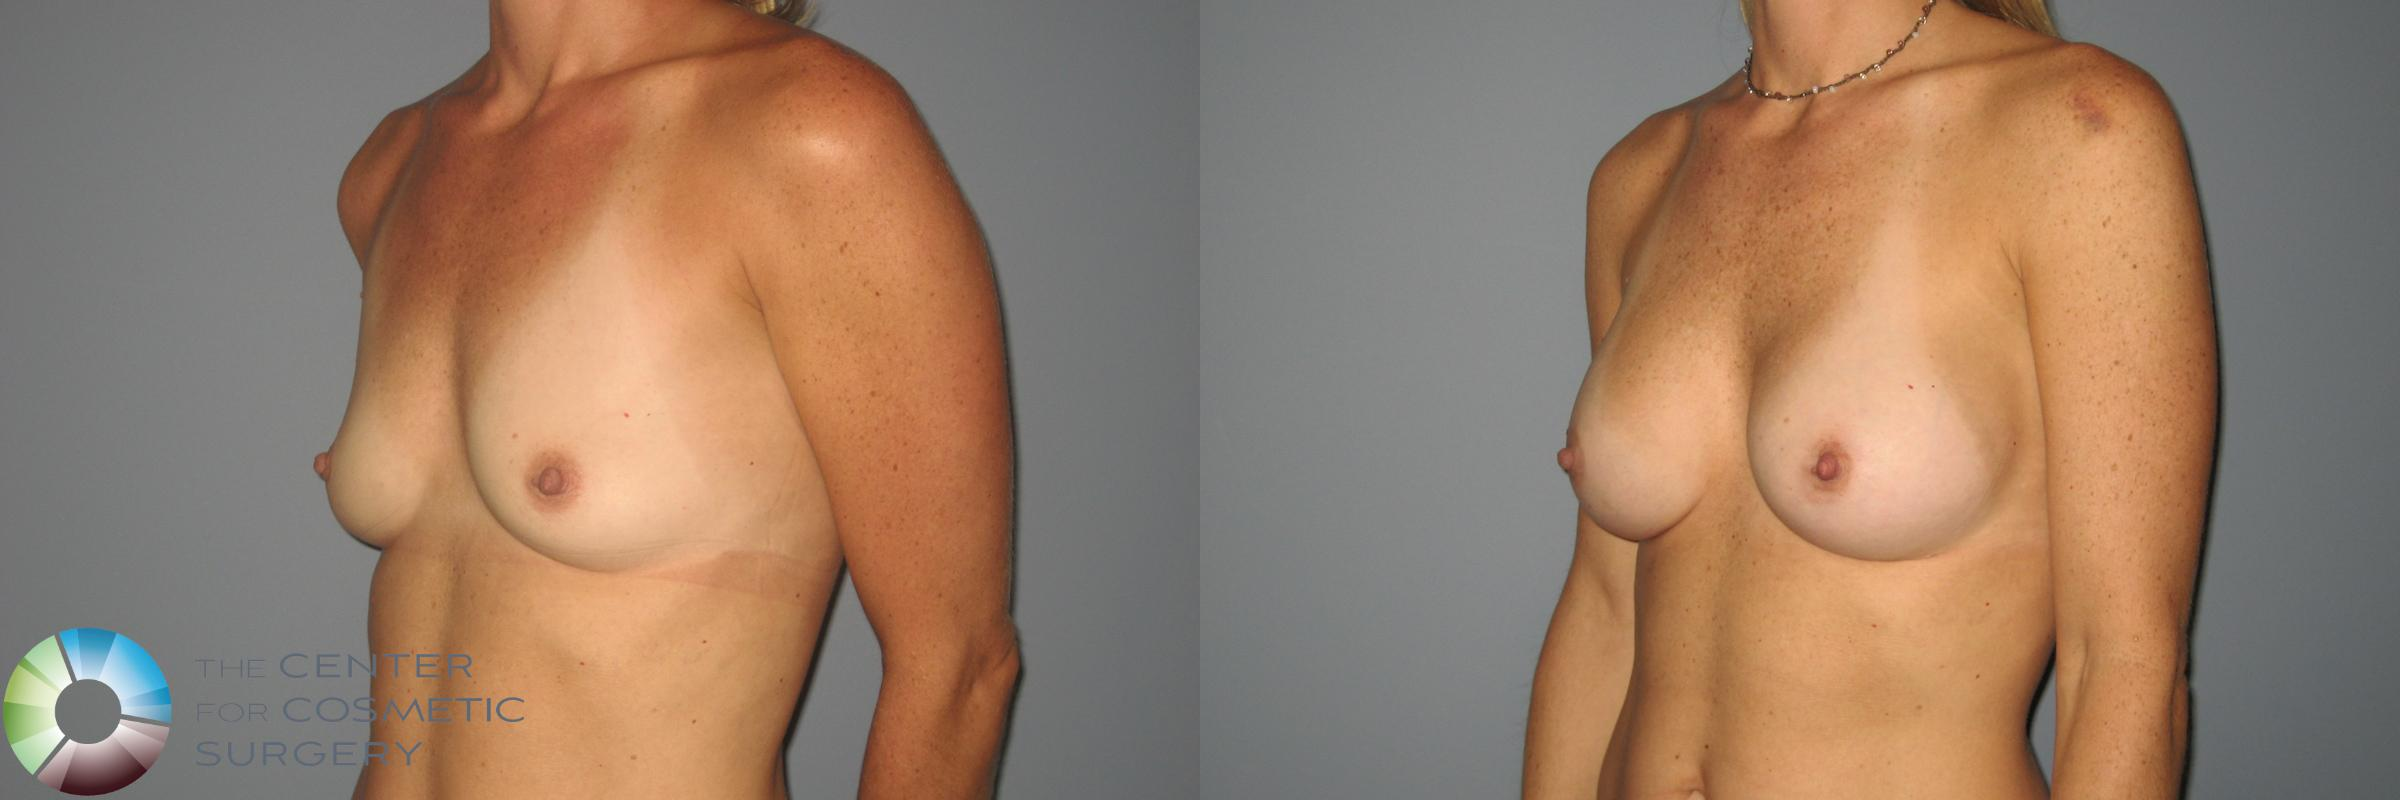 Breast Augmentation Case 871 Before & After View #2 | Golden, CO | The Center for Cosmetic Surgery